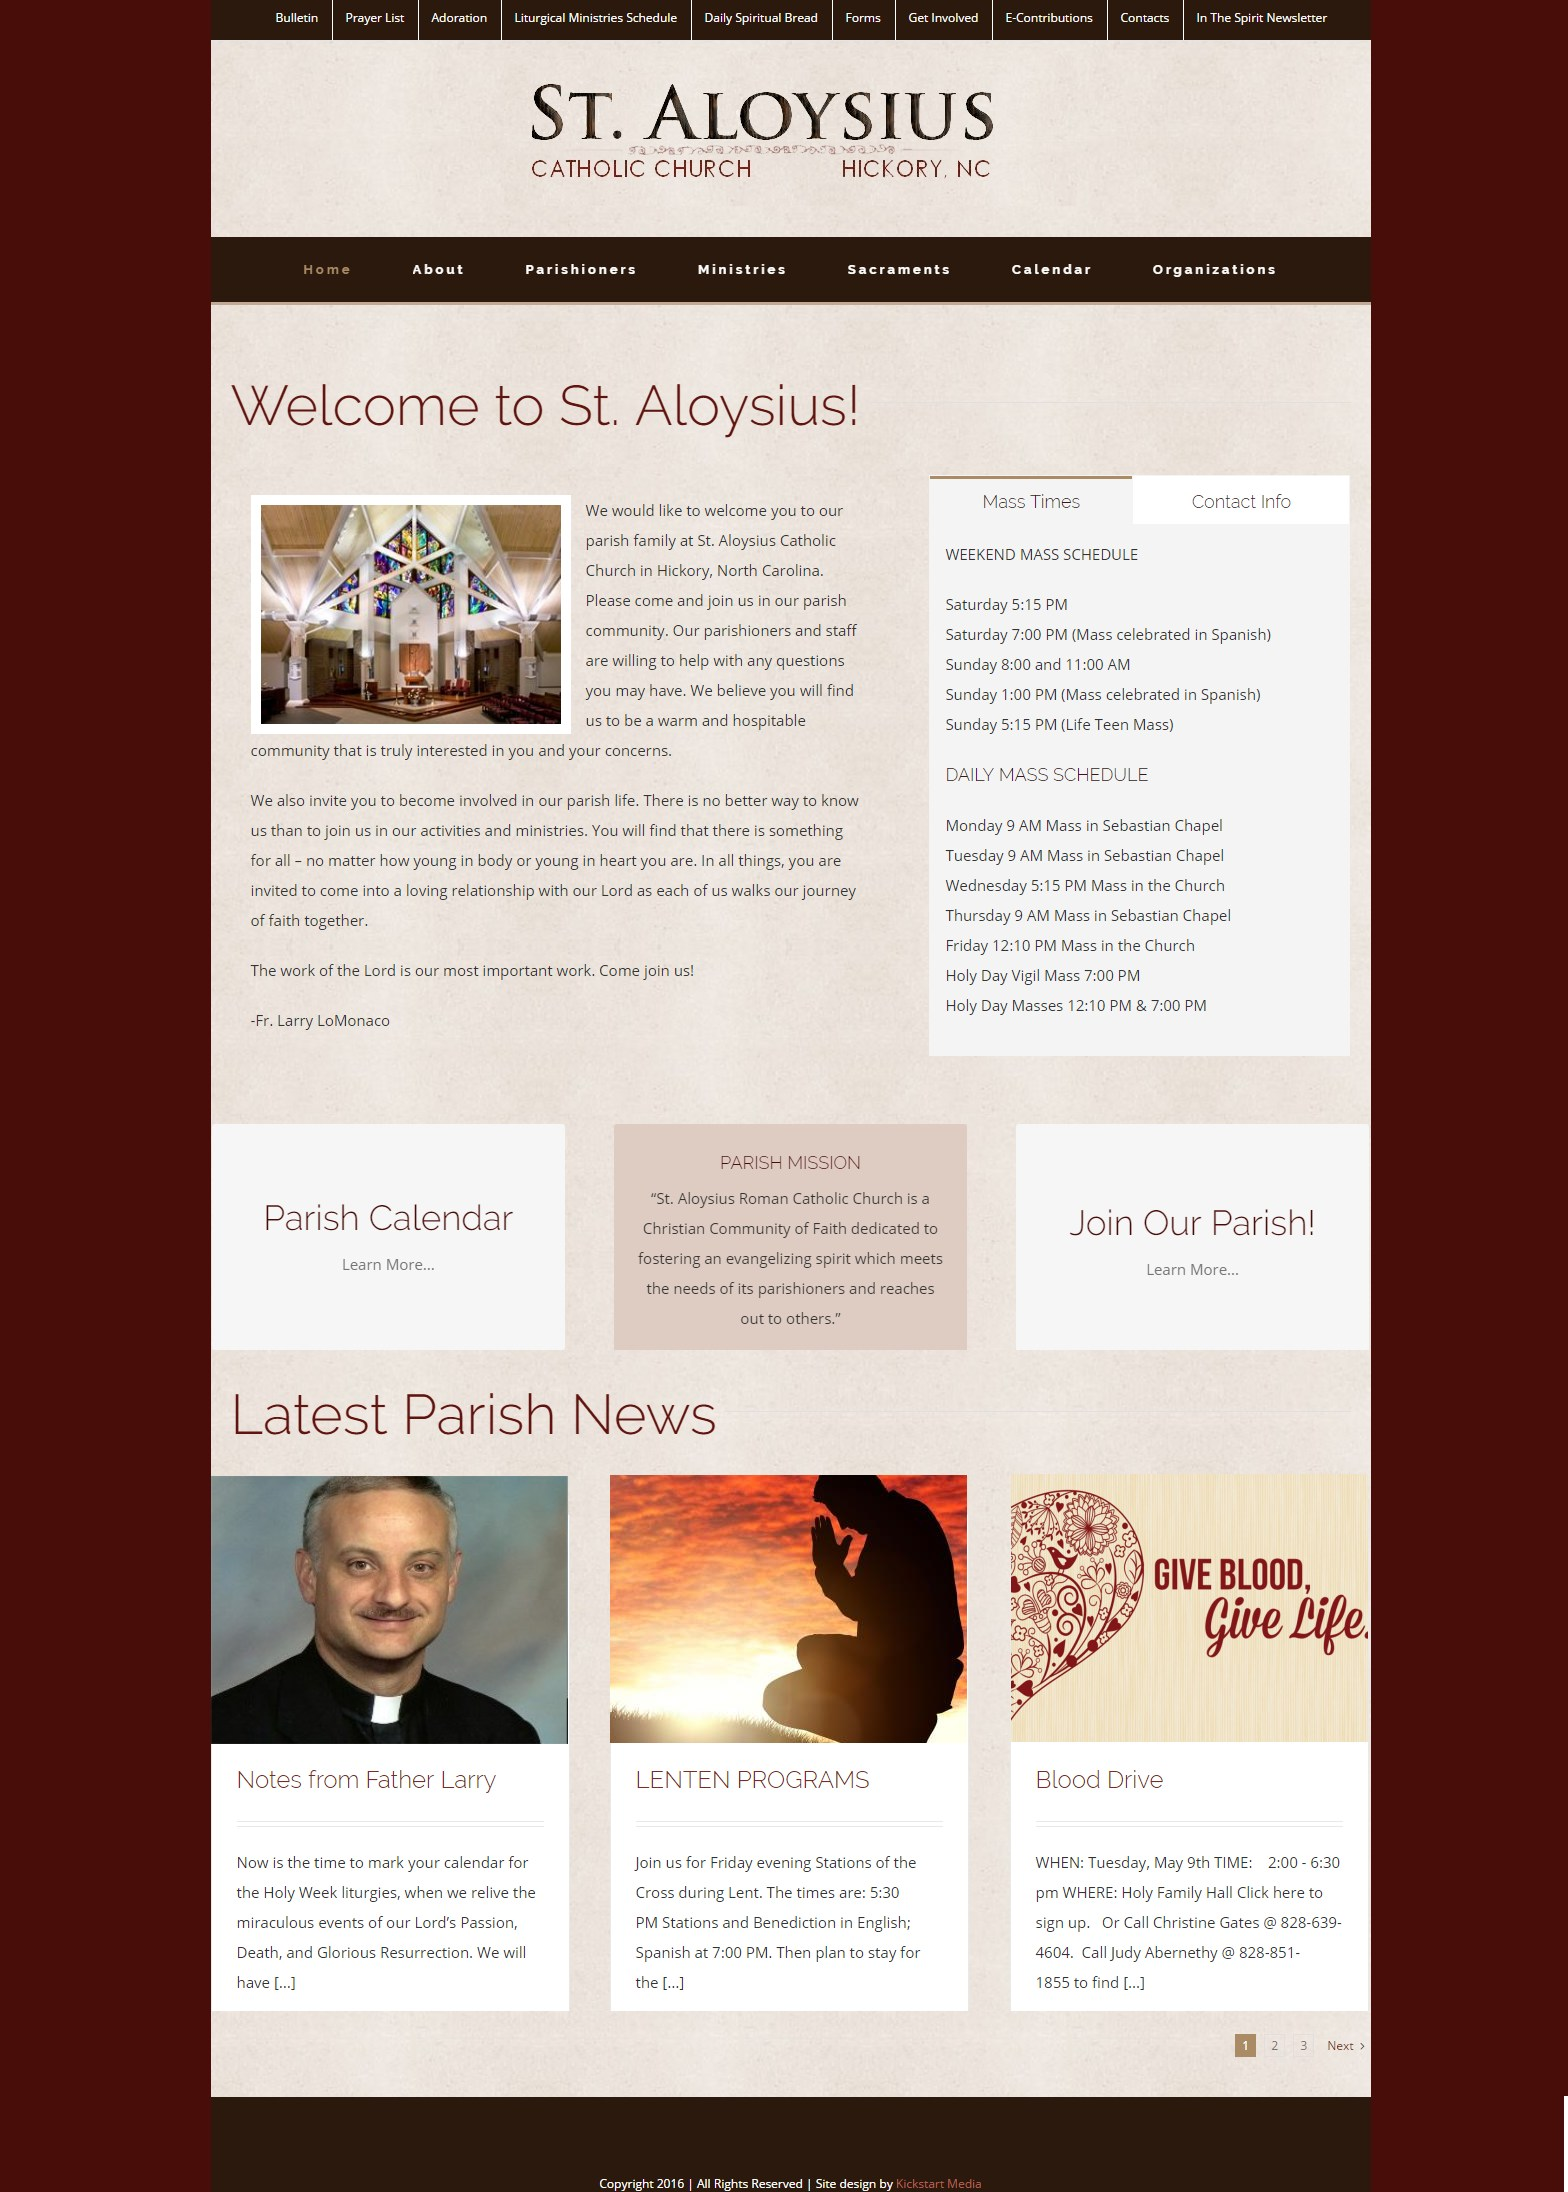 St Aloysius Catholic Church - Kickstart Media: Beautiful